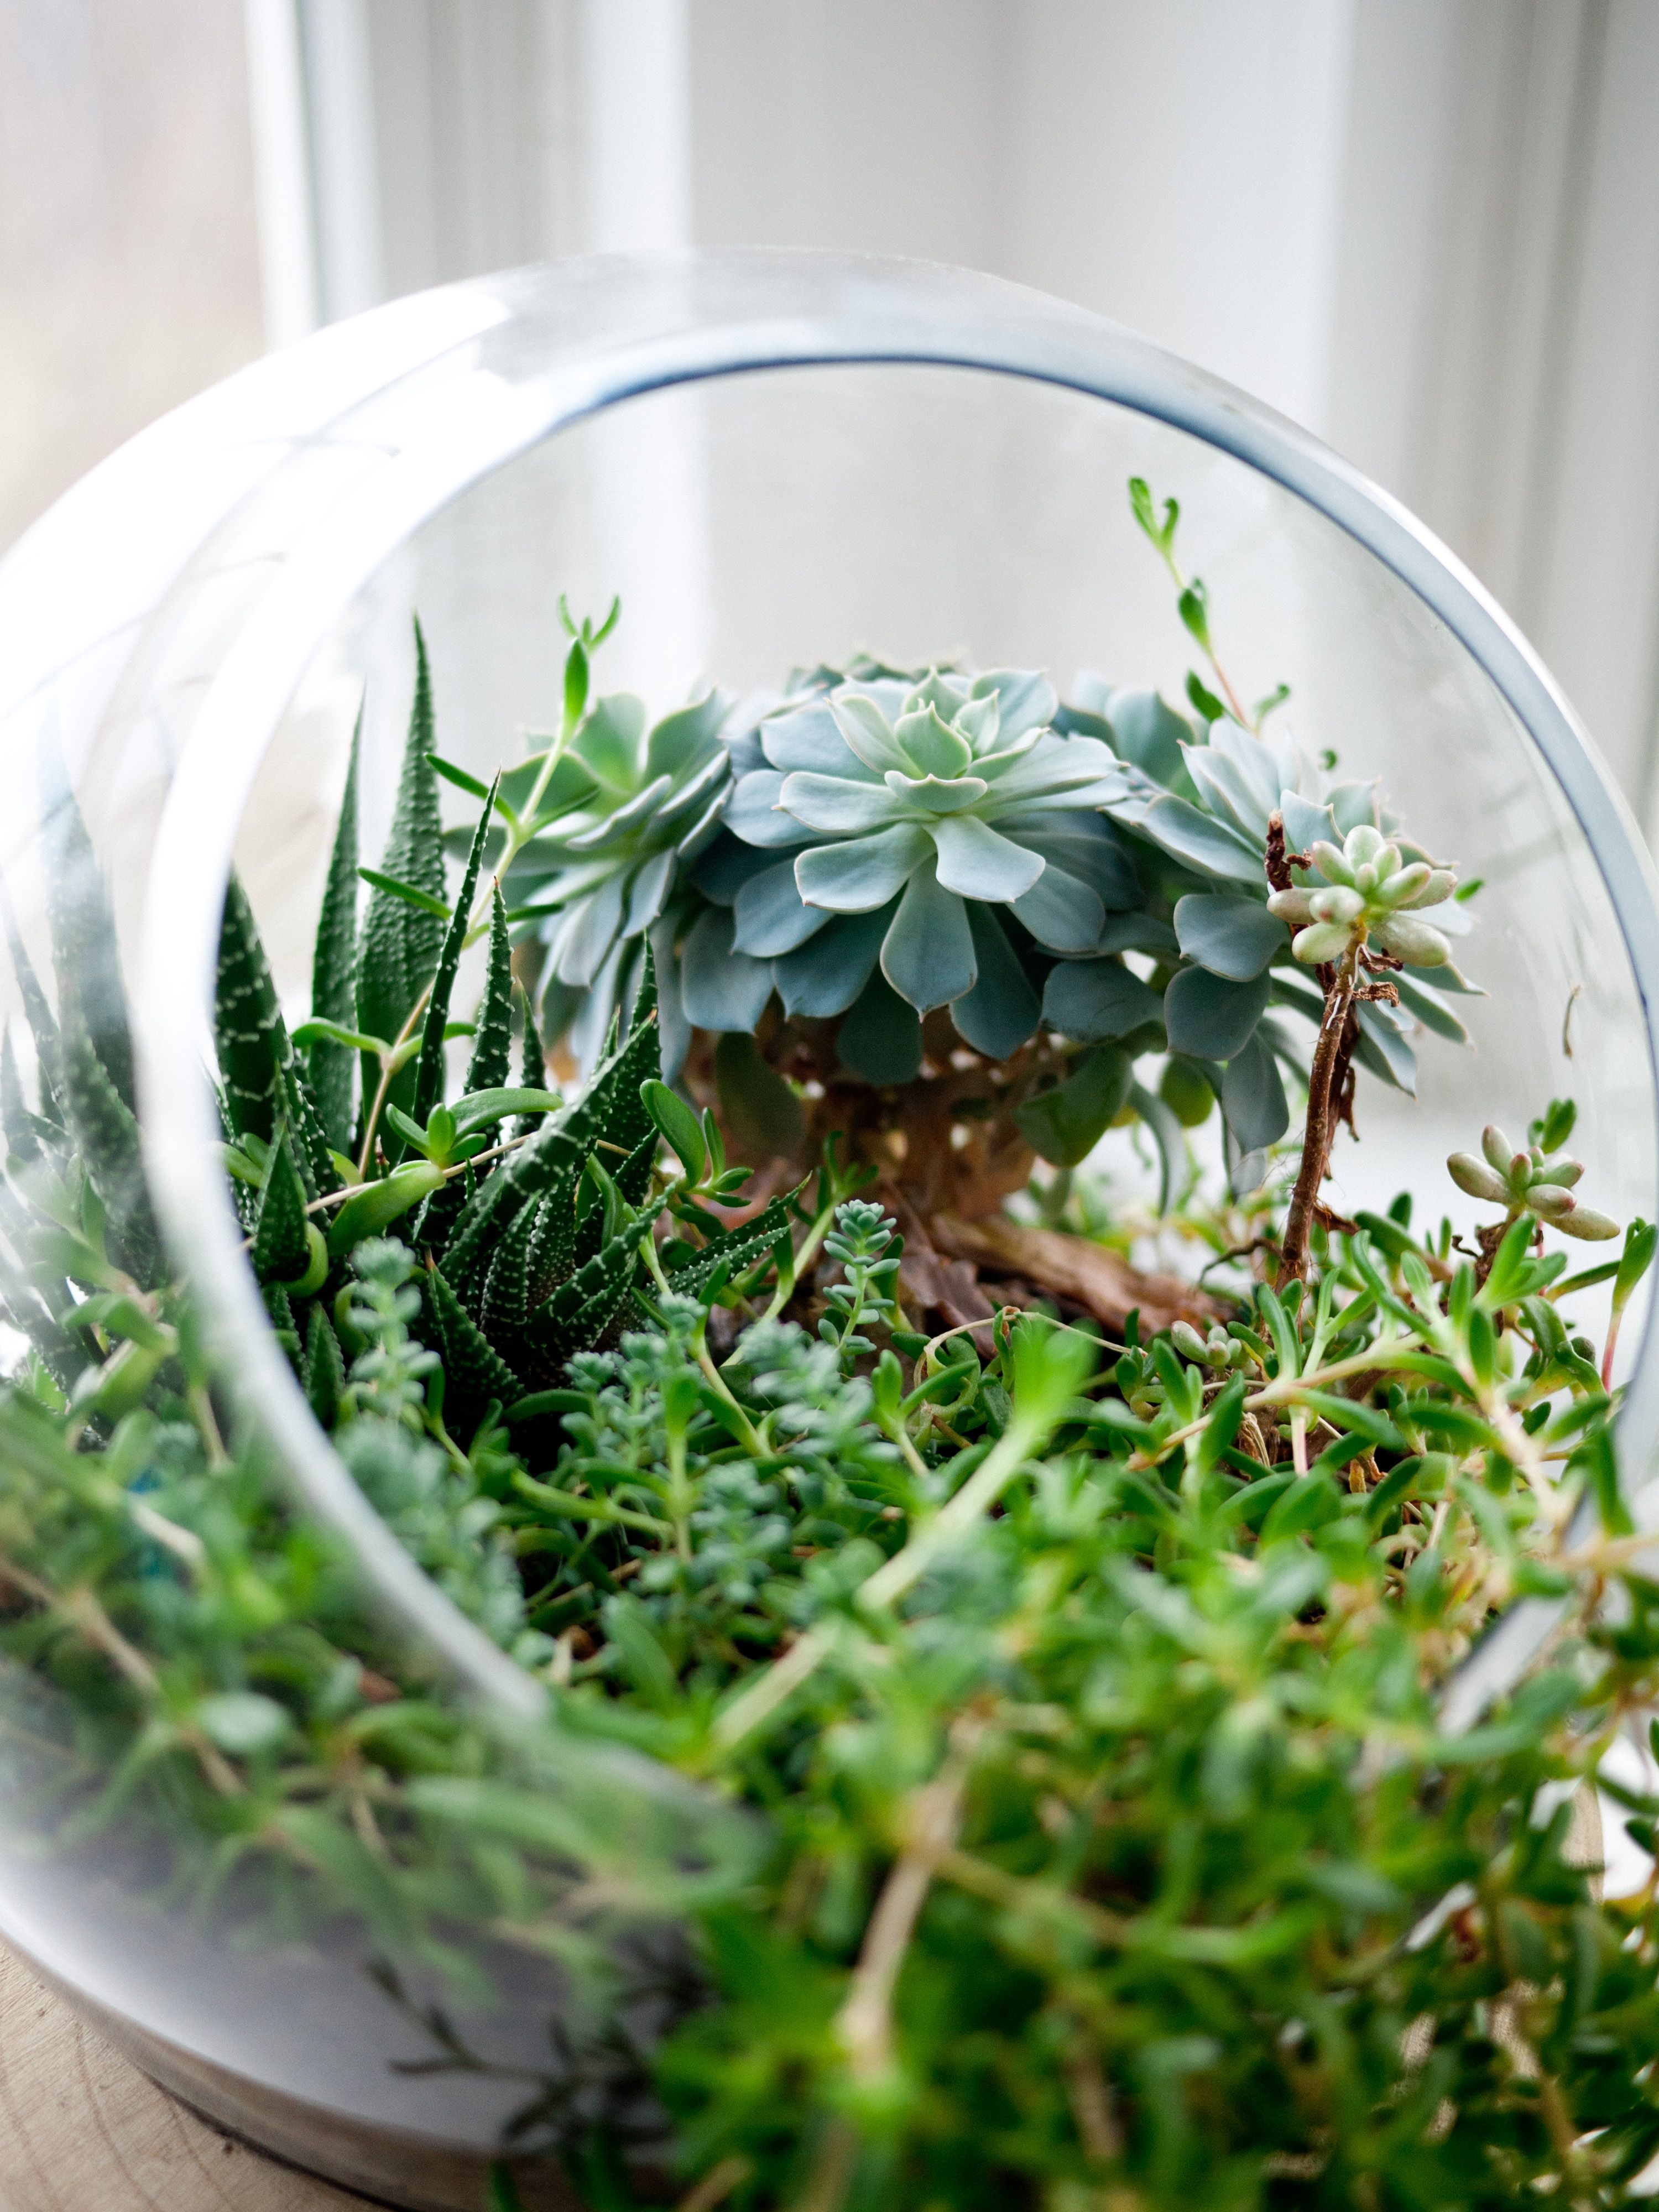 Low Maintenance Indoor Plant Design Idea For Your Waiting Room Skip